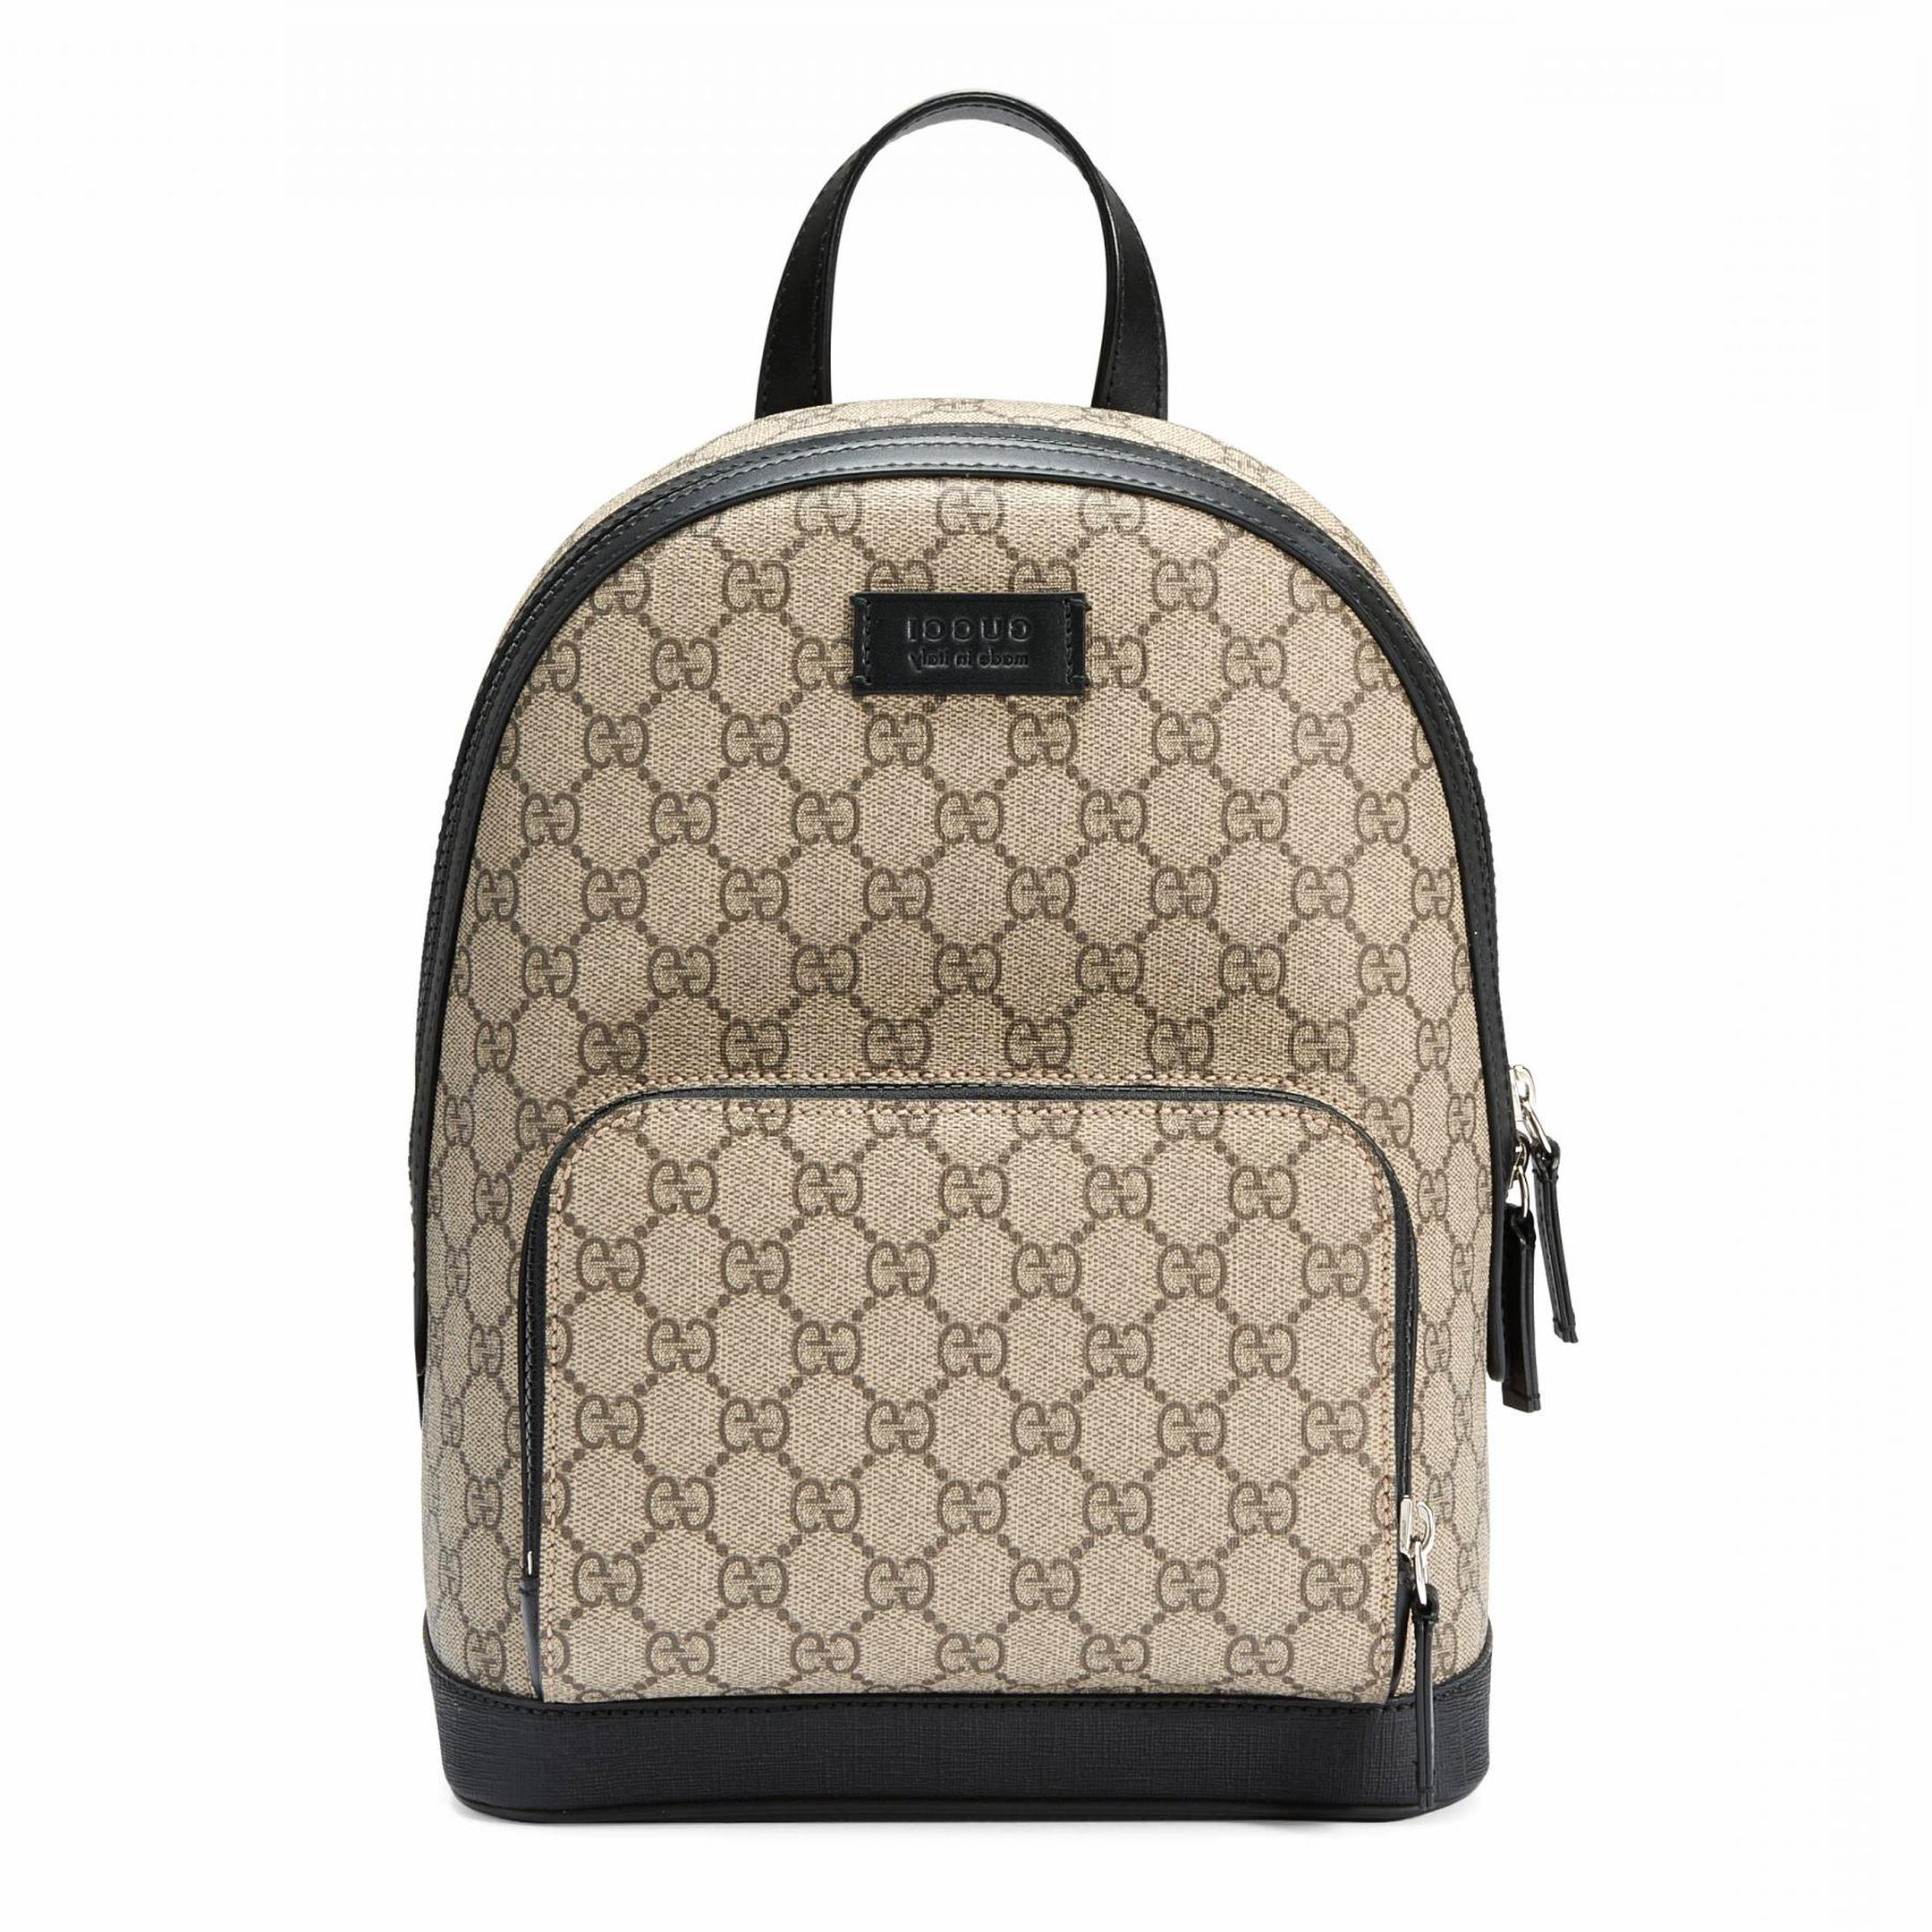 sac a dos gucci d'occasion